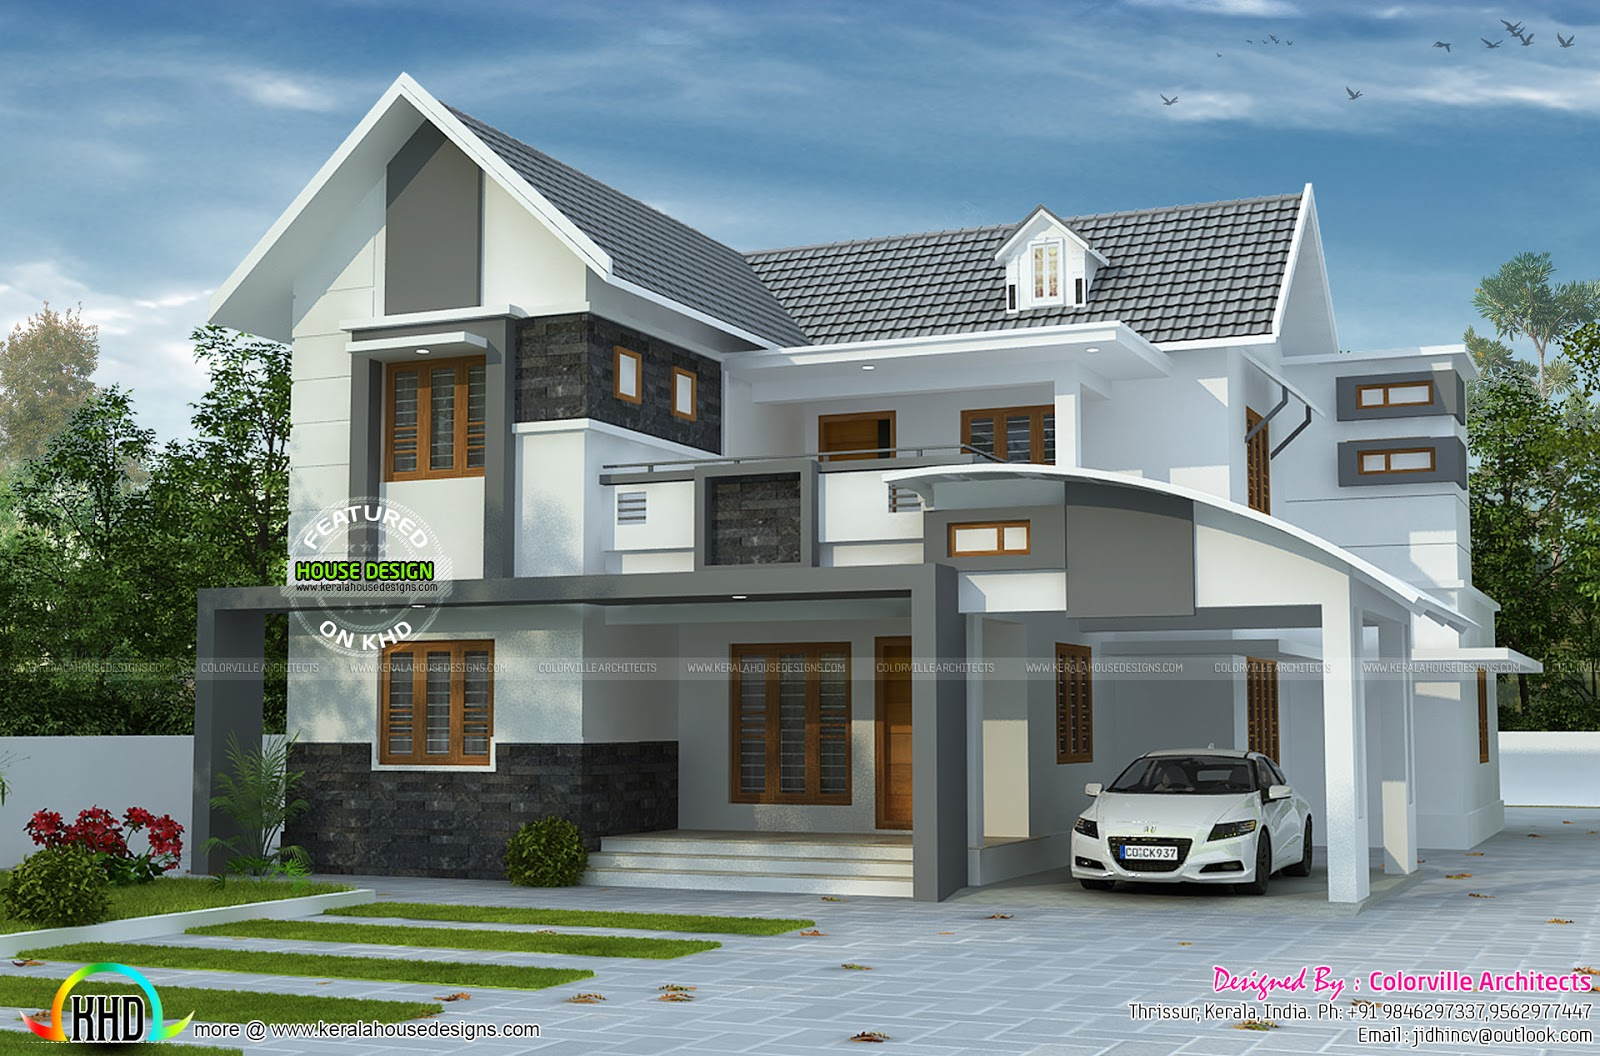 House plan by colorville architects kerala home design for Home designs pinterest